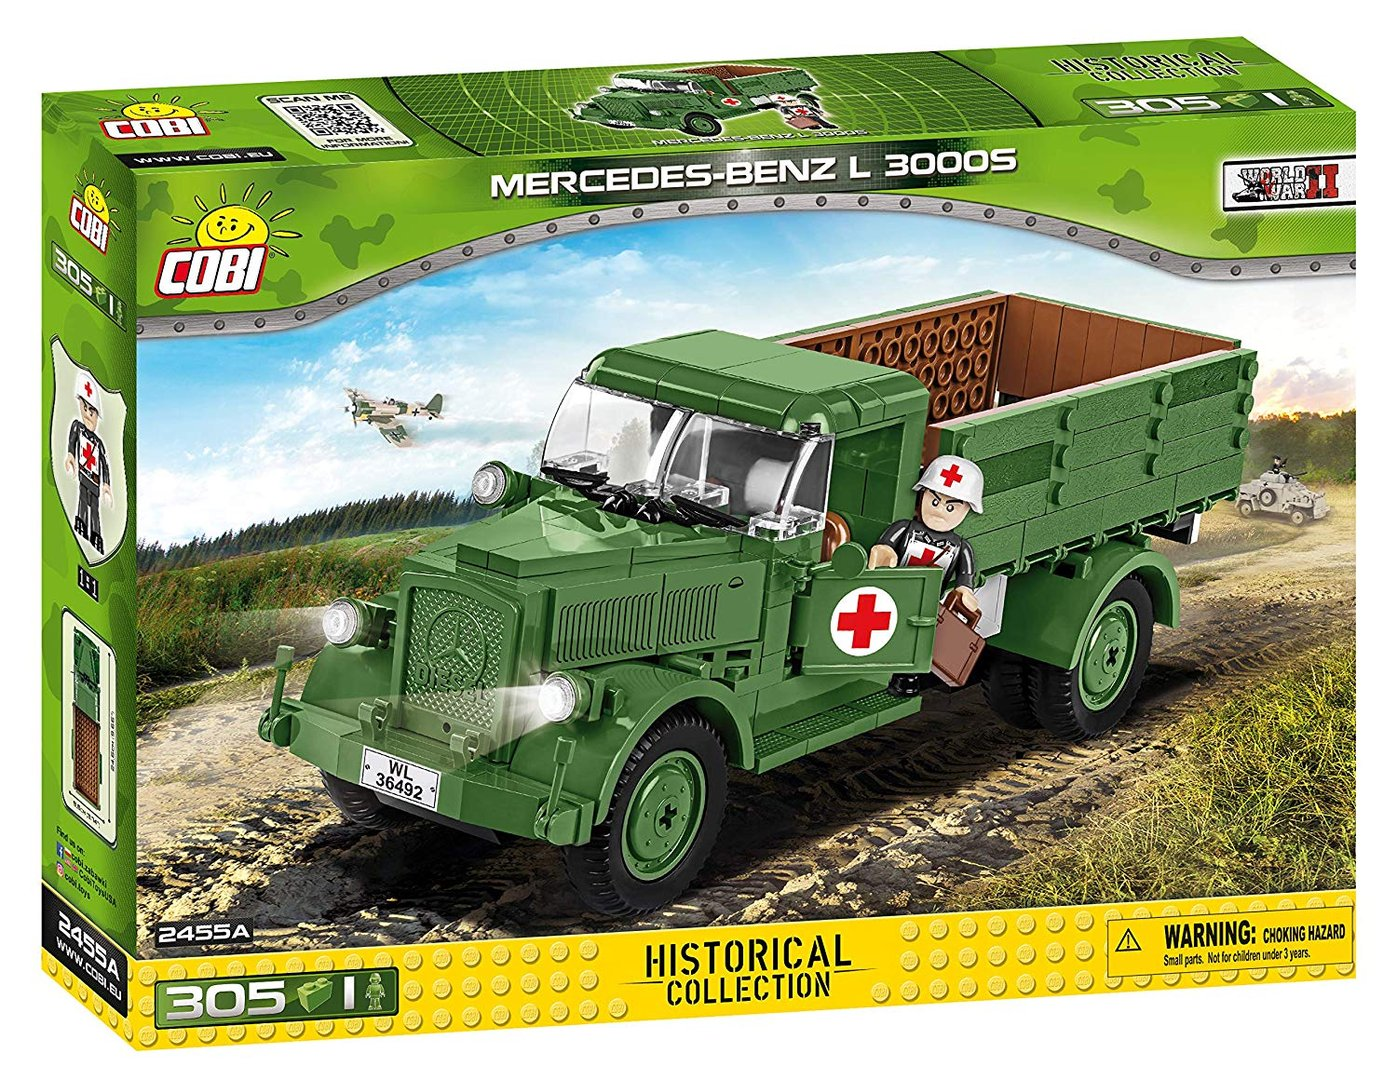 Cobi 2455A Mercedes Benz L3000 Pad printed - no Stickers (Historical Collection WWII) New Version